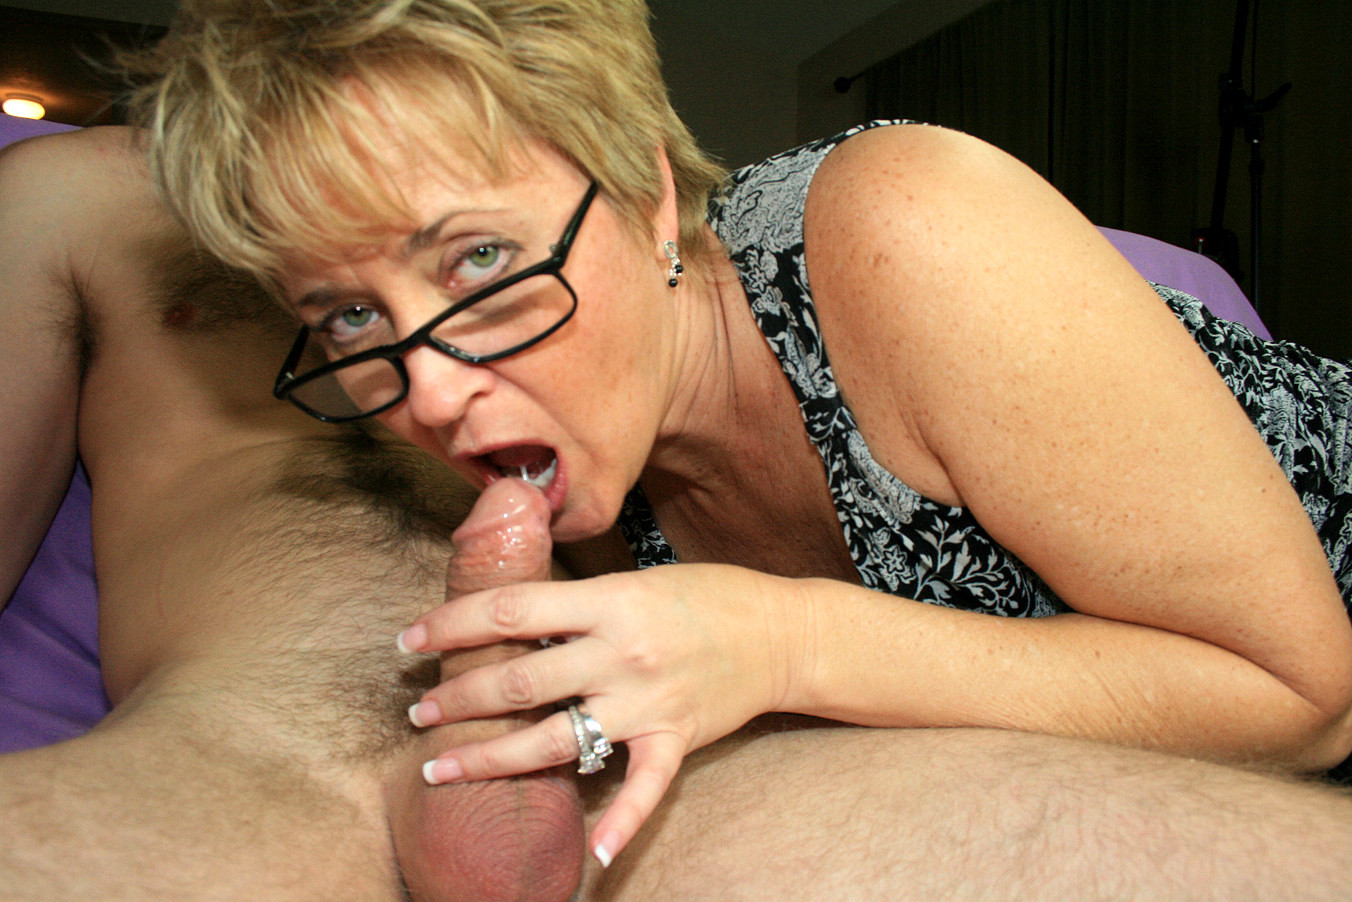 Free hd hot mature blonde with glasses is giving a young guy the best sex lesson ever porn photo